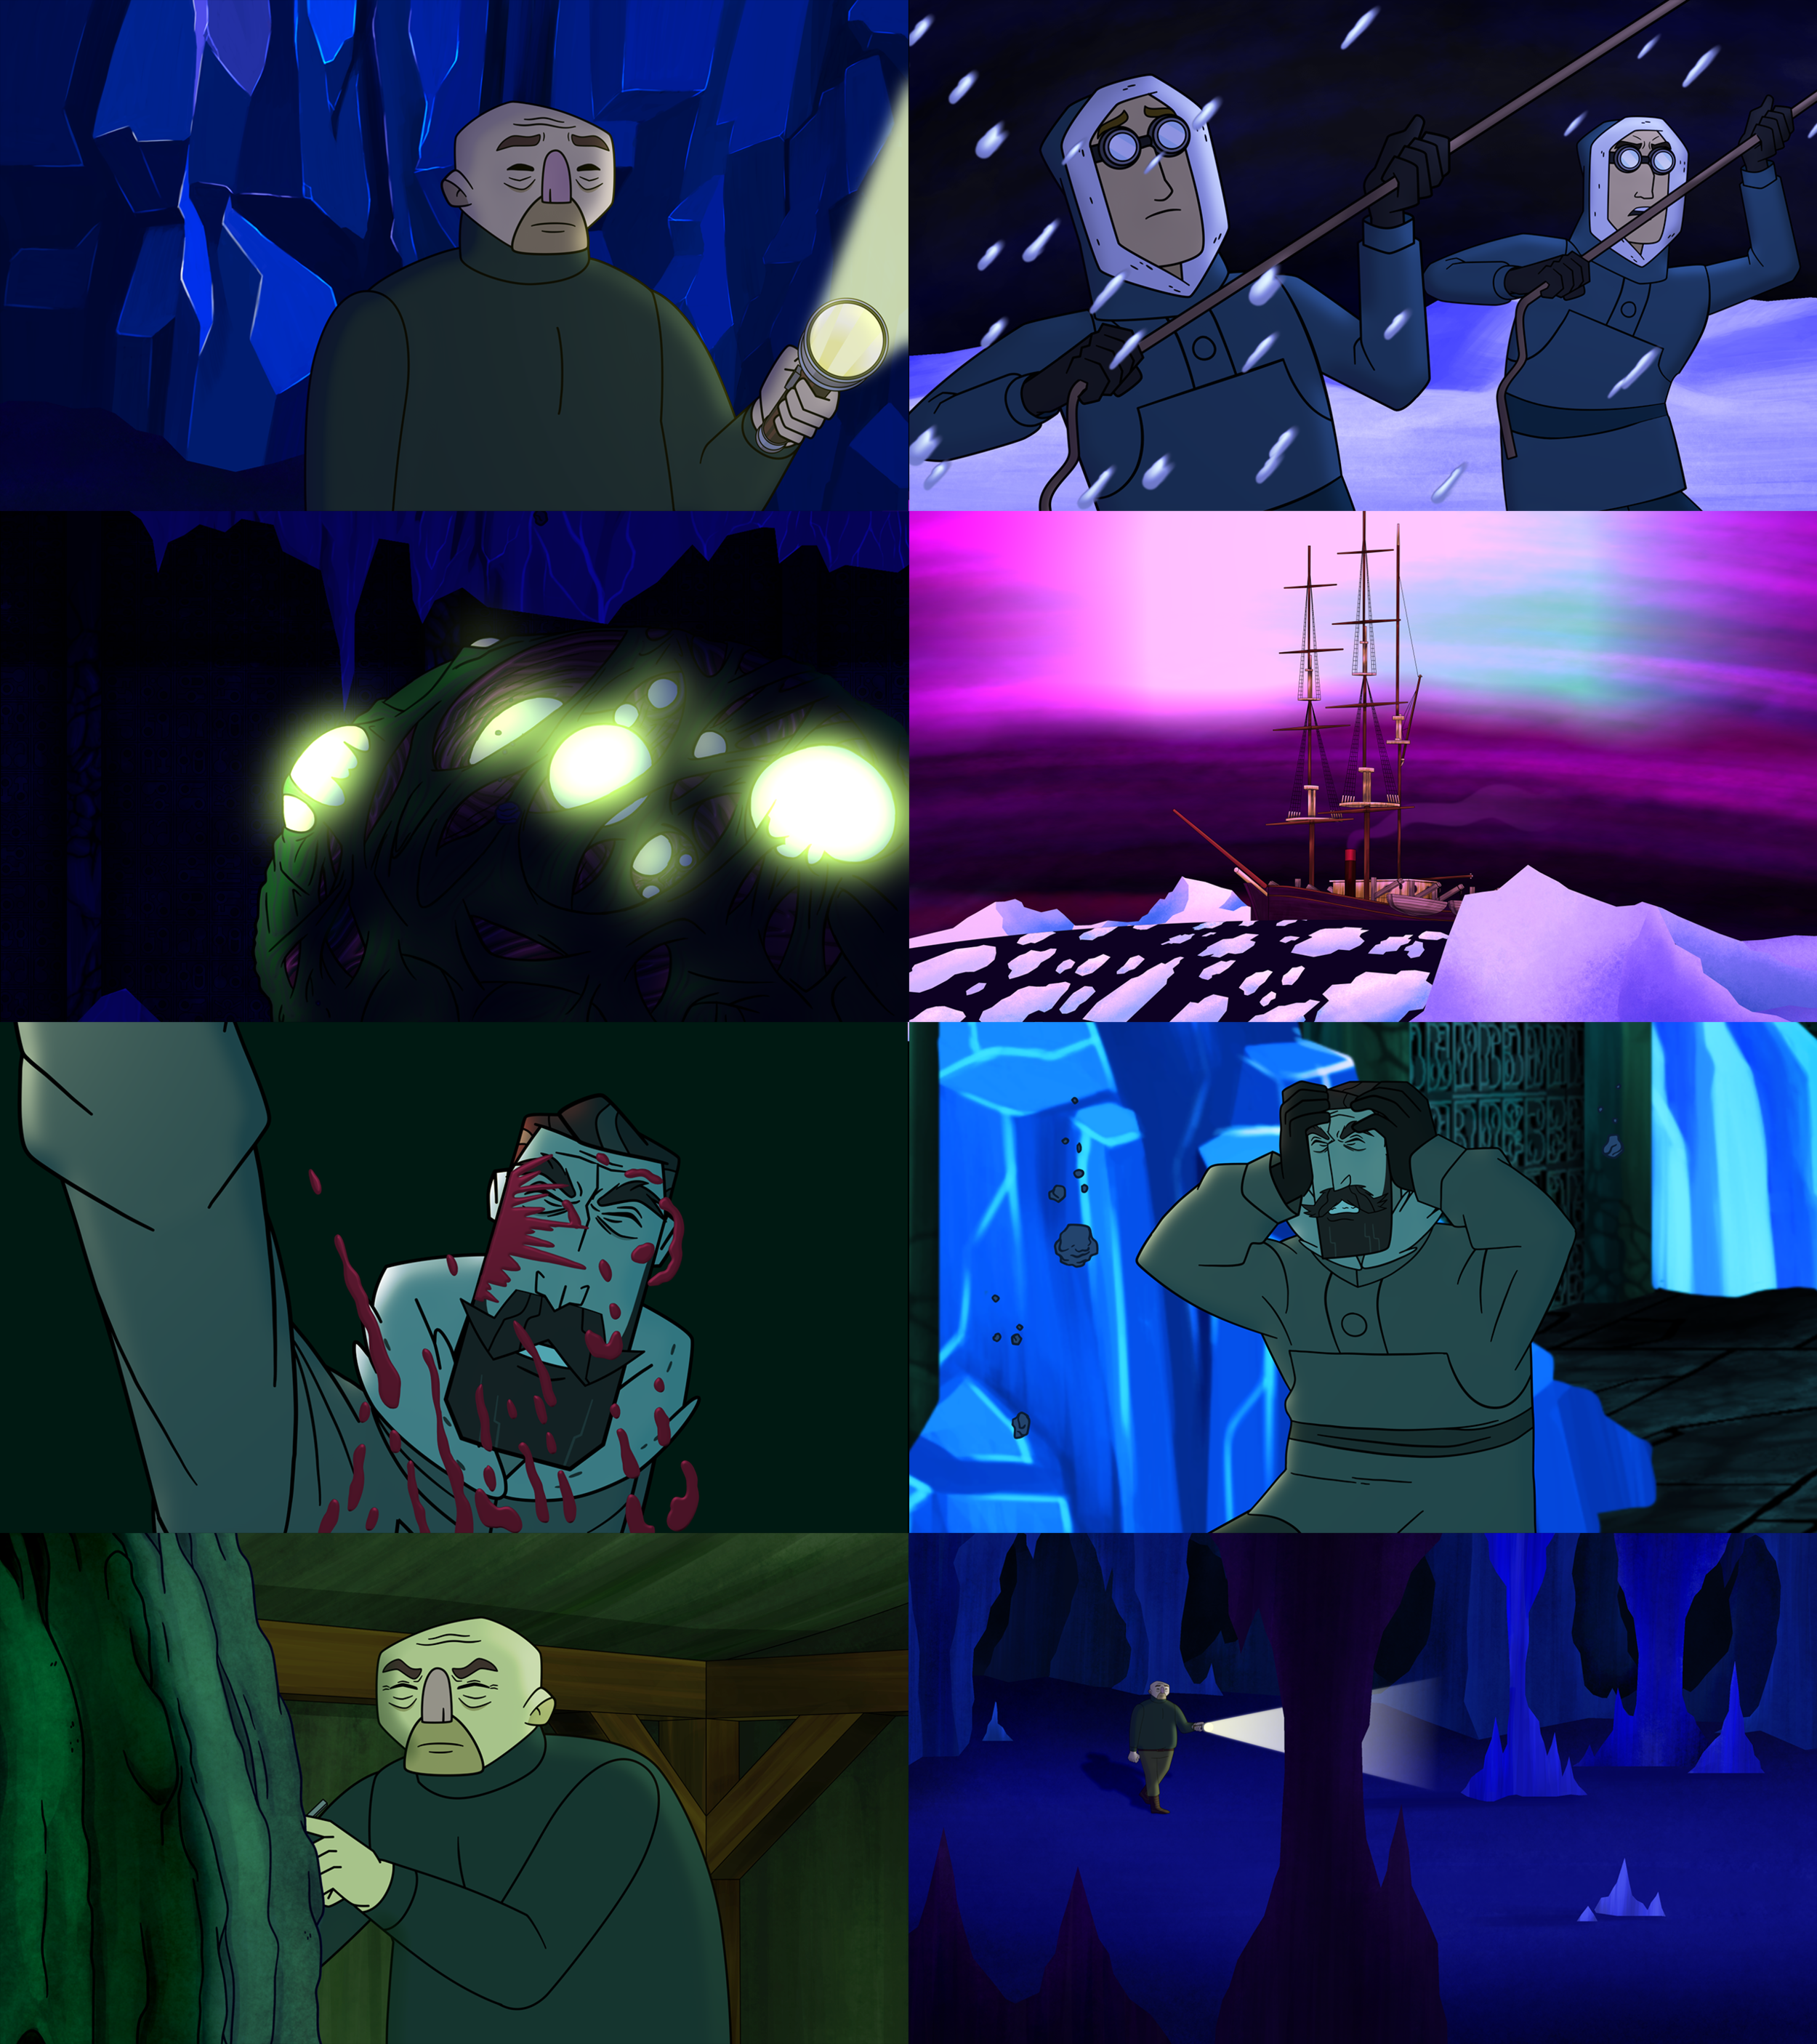 "MOUNTAINS OF MADNESS - MOUNTAINS OF MADNESS is an animated web series based on H.P. Lovecraft's Novella ""At the Mountains of Madness"".In 1930 a team of scientists are utterly unprepared for what they discover at the bottom of the world. STRANGE CREATURES from beyond time and space wreck HAVOC on the group. And the survivors must face a truth more chilling than a LONELY DEATH on the frozen wastes of Antarctica.Watch our proof of concept video below. Find more episode and info at:http://mountainsofmadnessseries.com/"